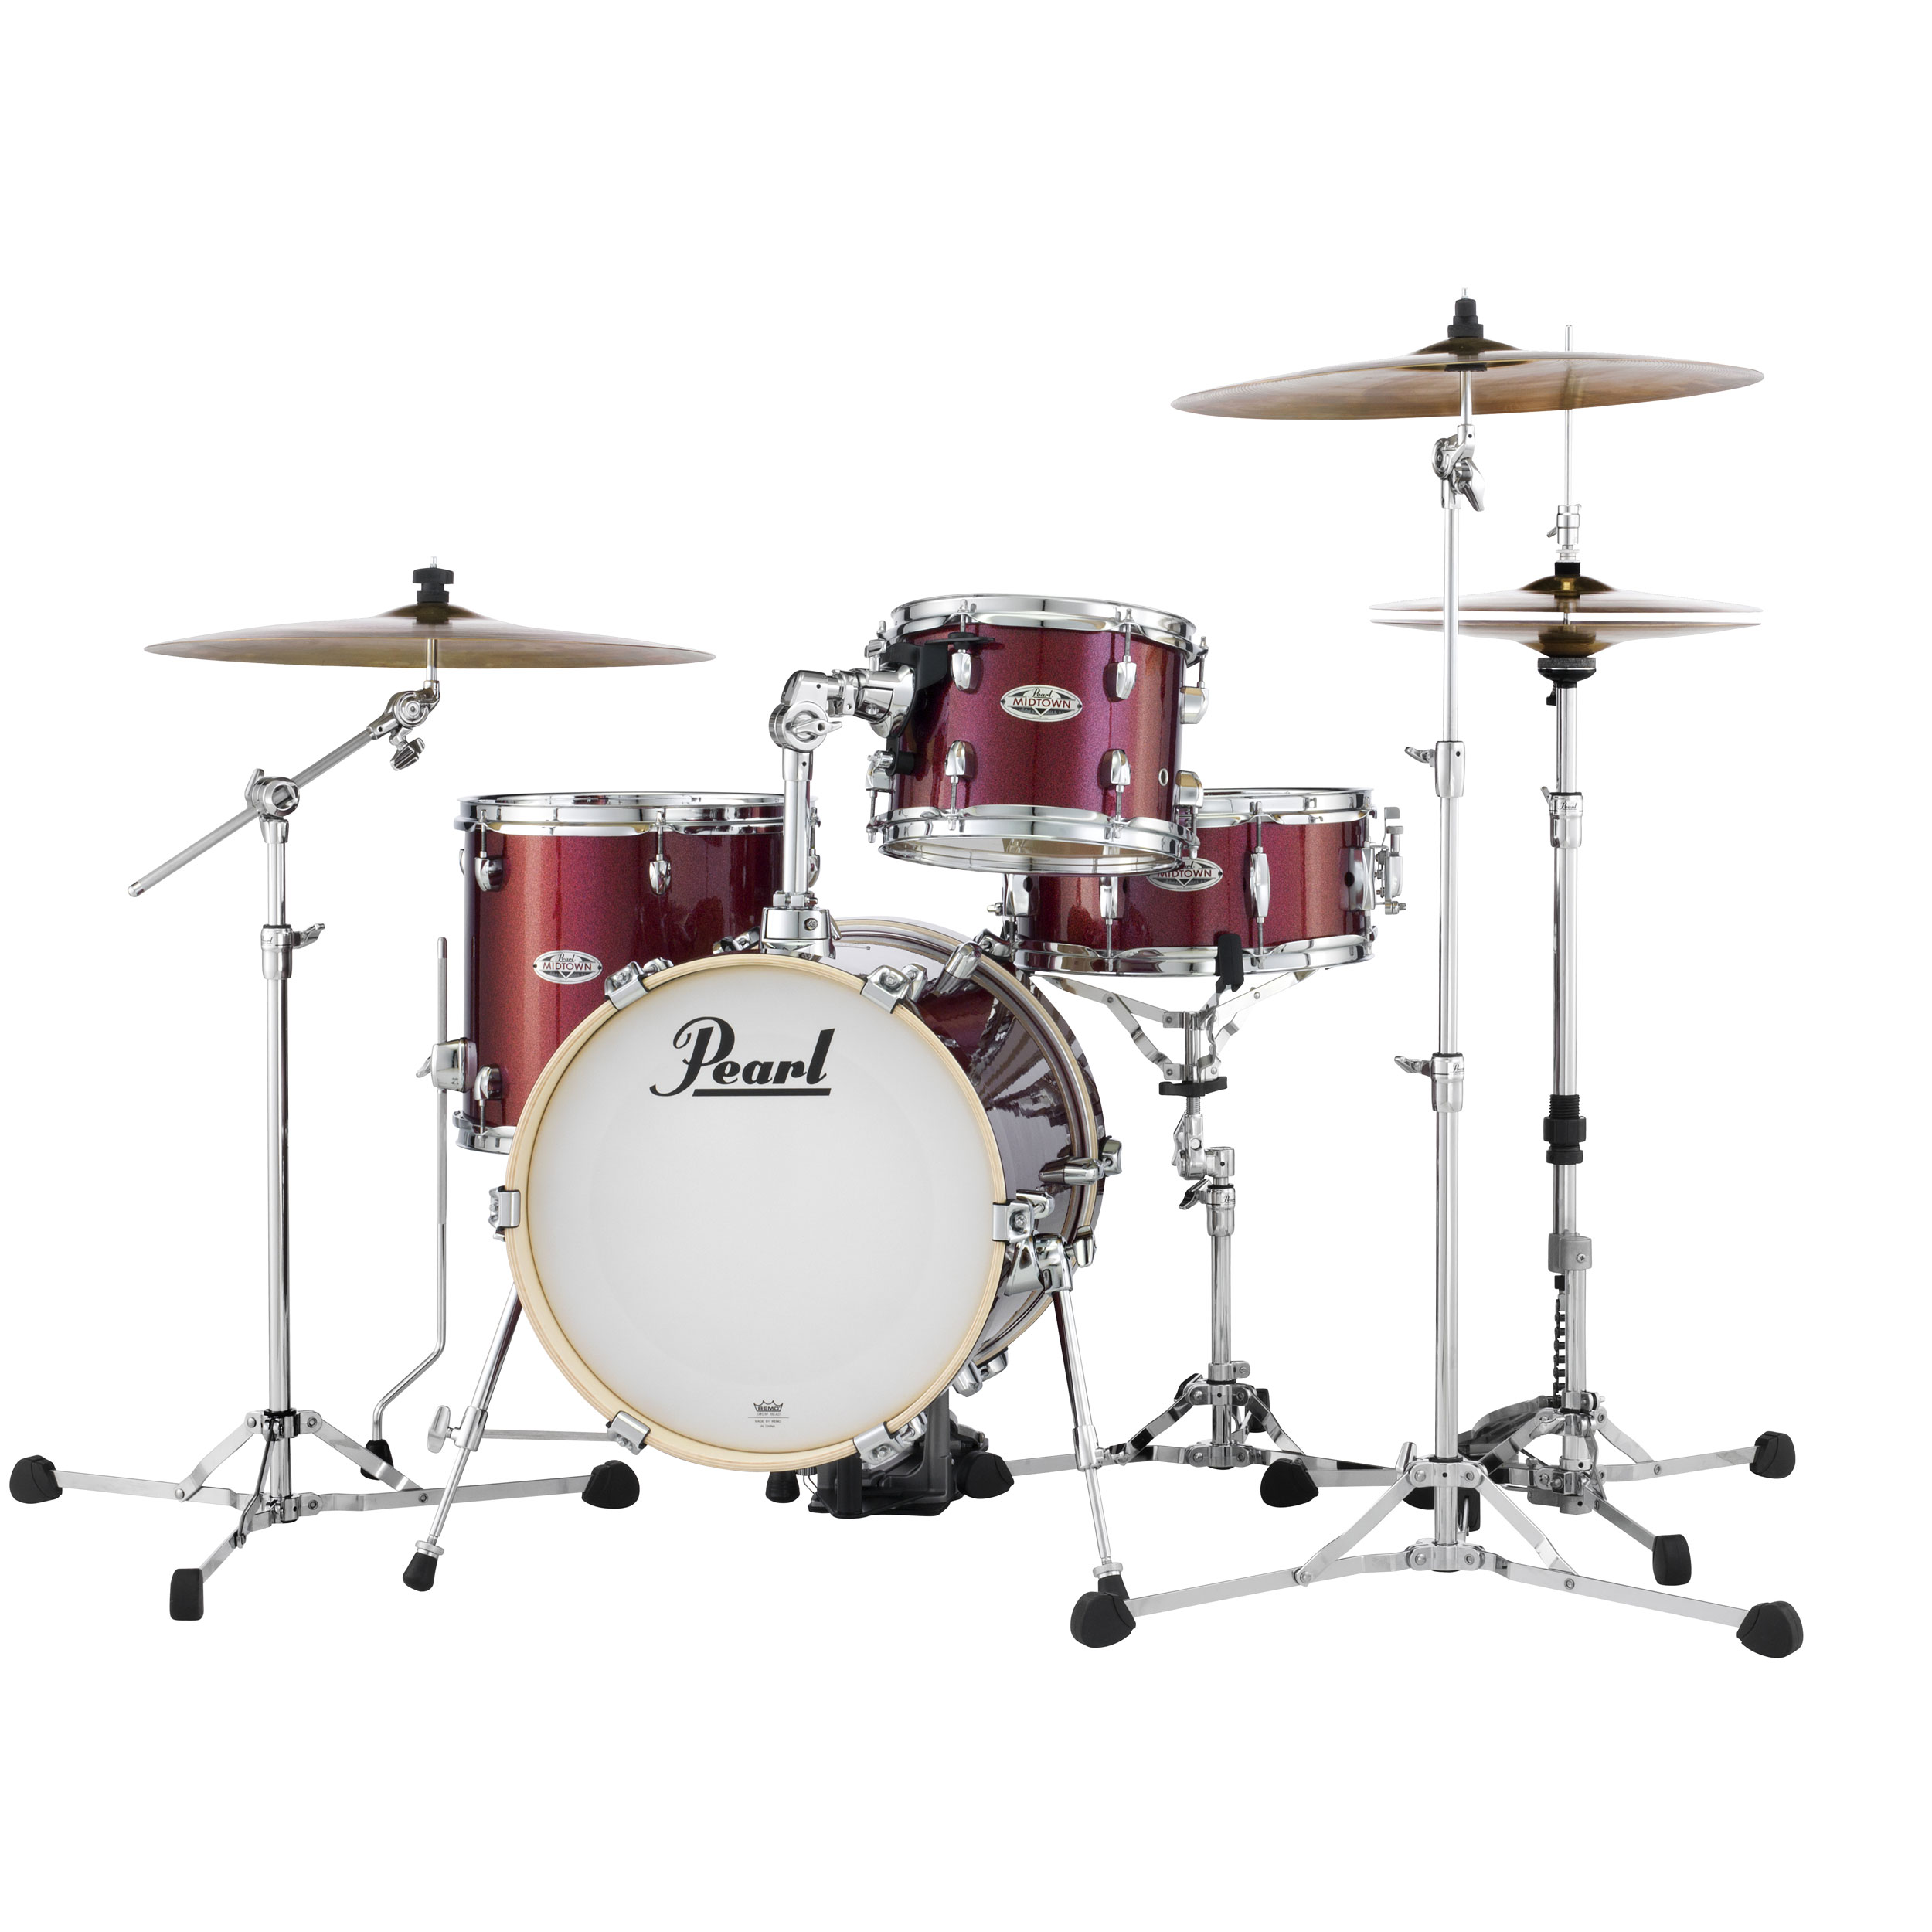 """Pearl Midtown 4-Piece Drum Set Shell Pack (16"""" Bass, 10/13"""" Toms, 13"""" Snare) with Bags"""